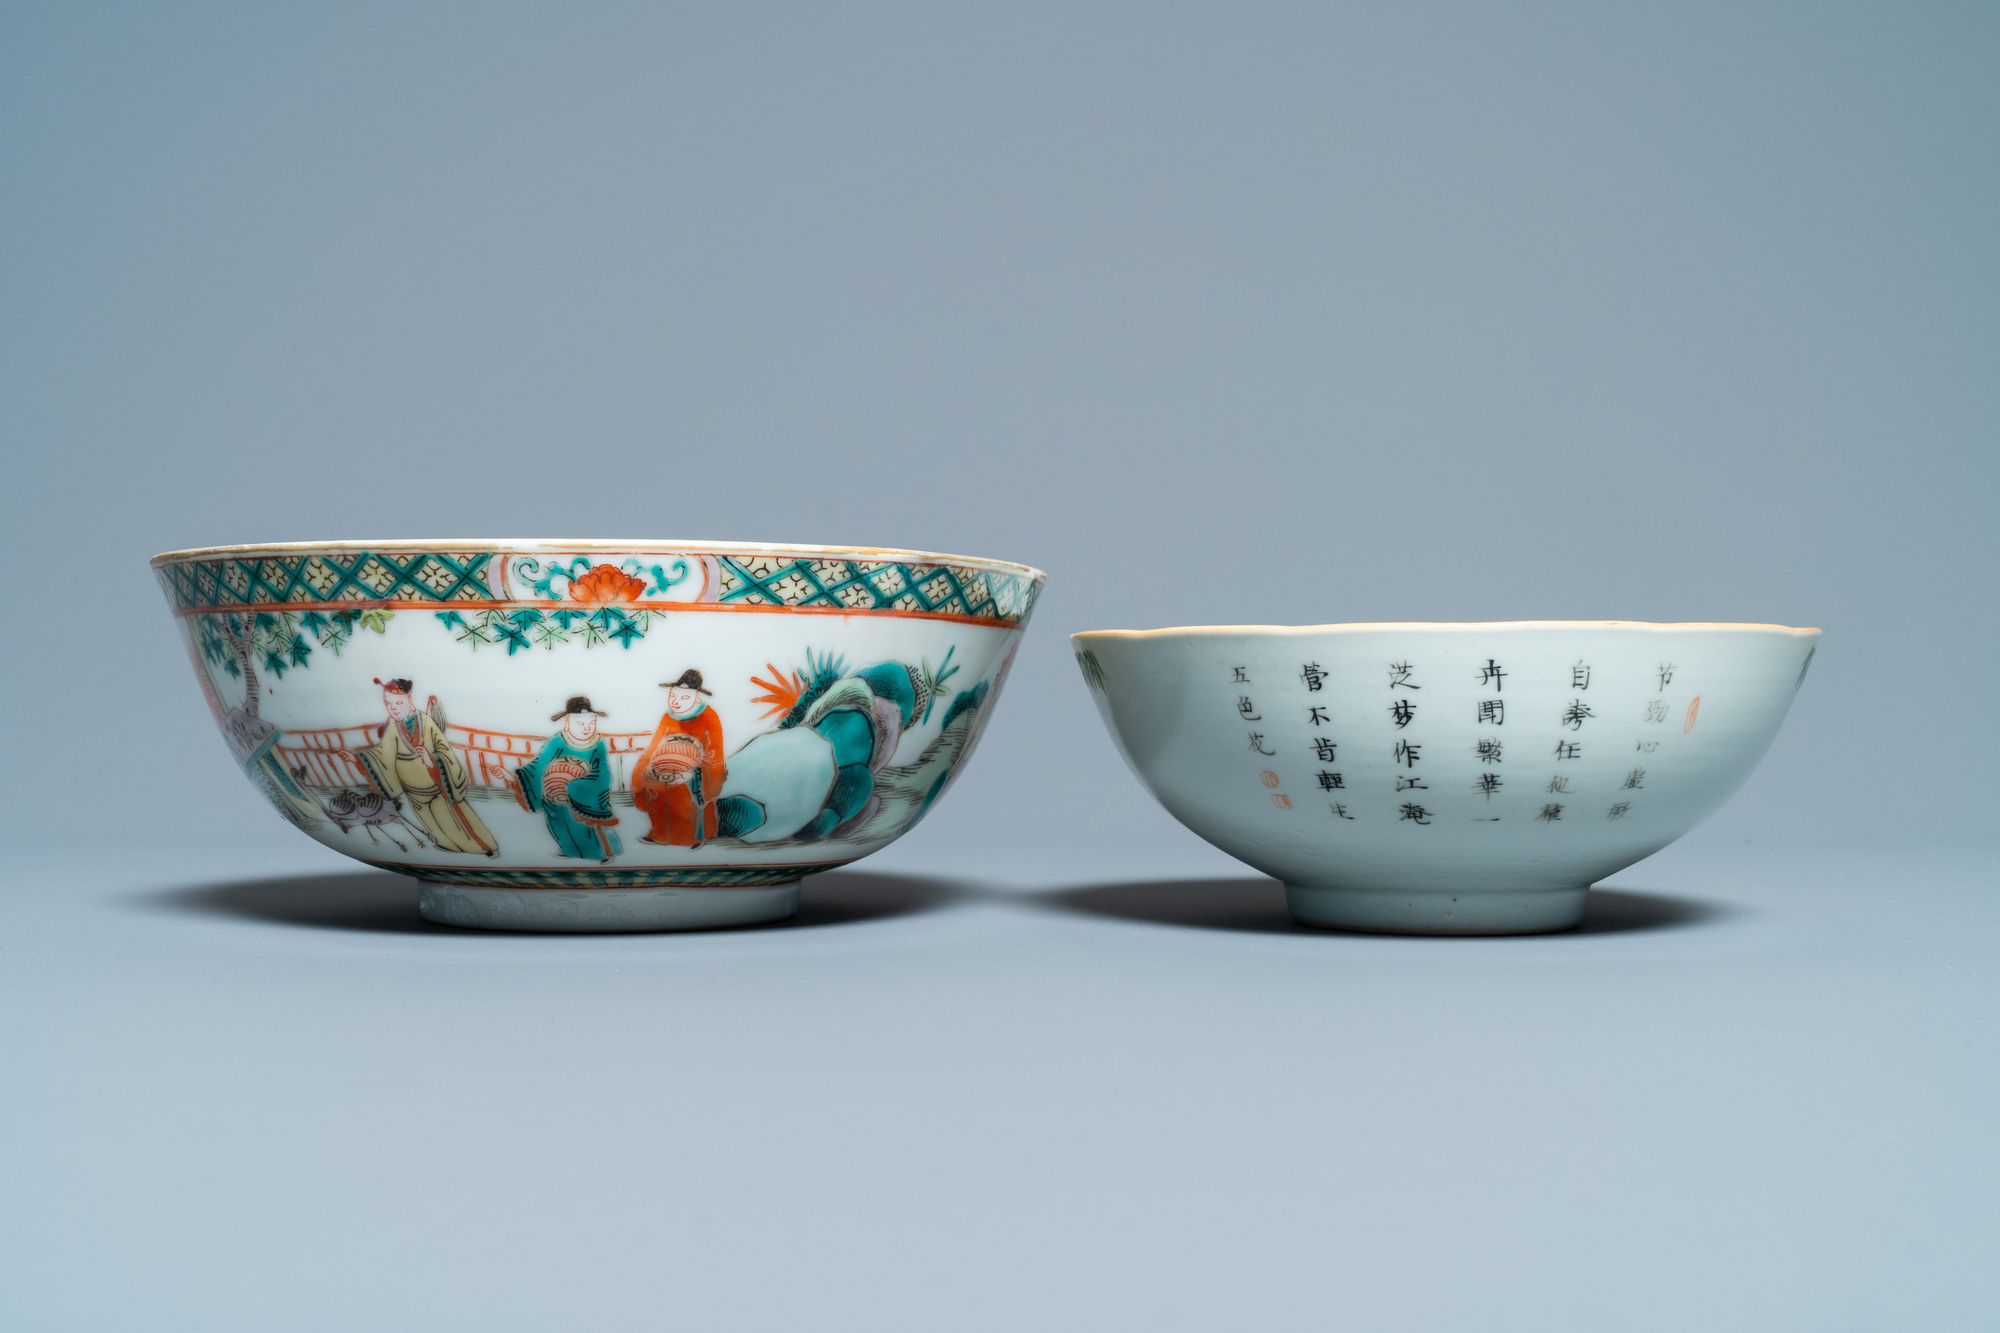 A Chinese blue and white jardiniere and two famille verte bowls, 19/20th C. - Image 10 of 13